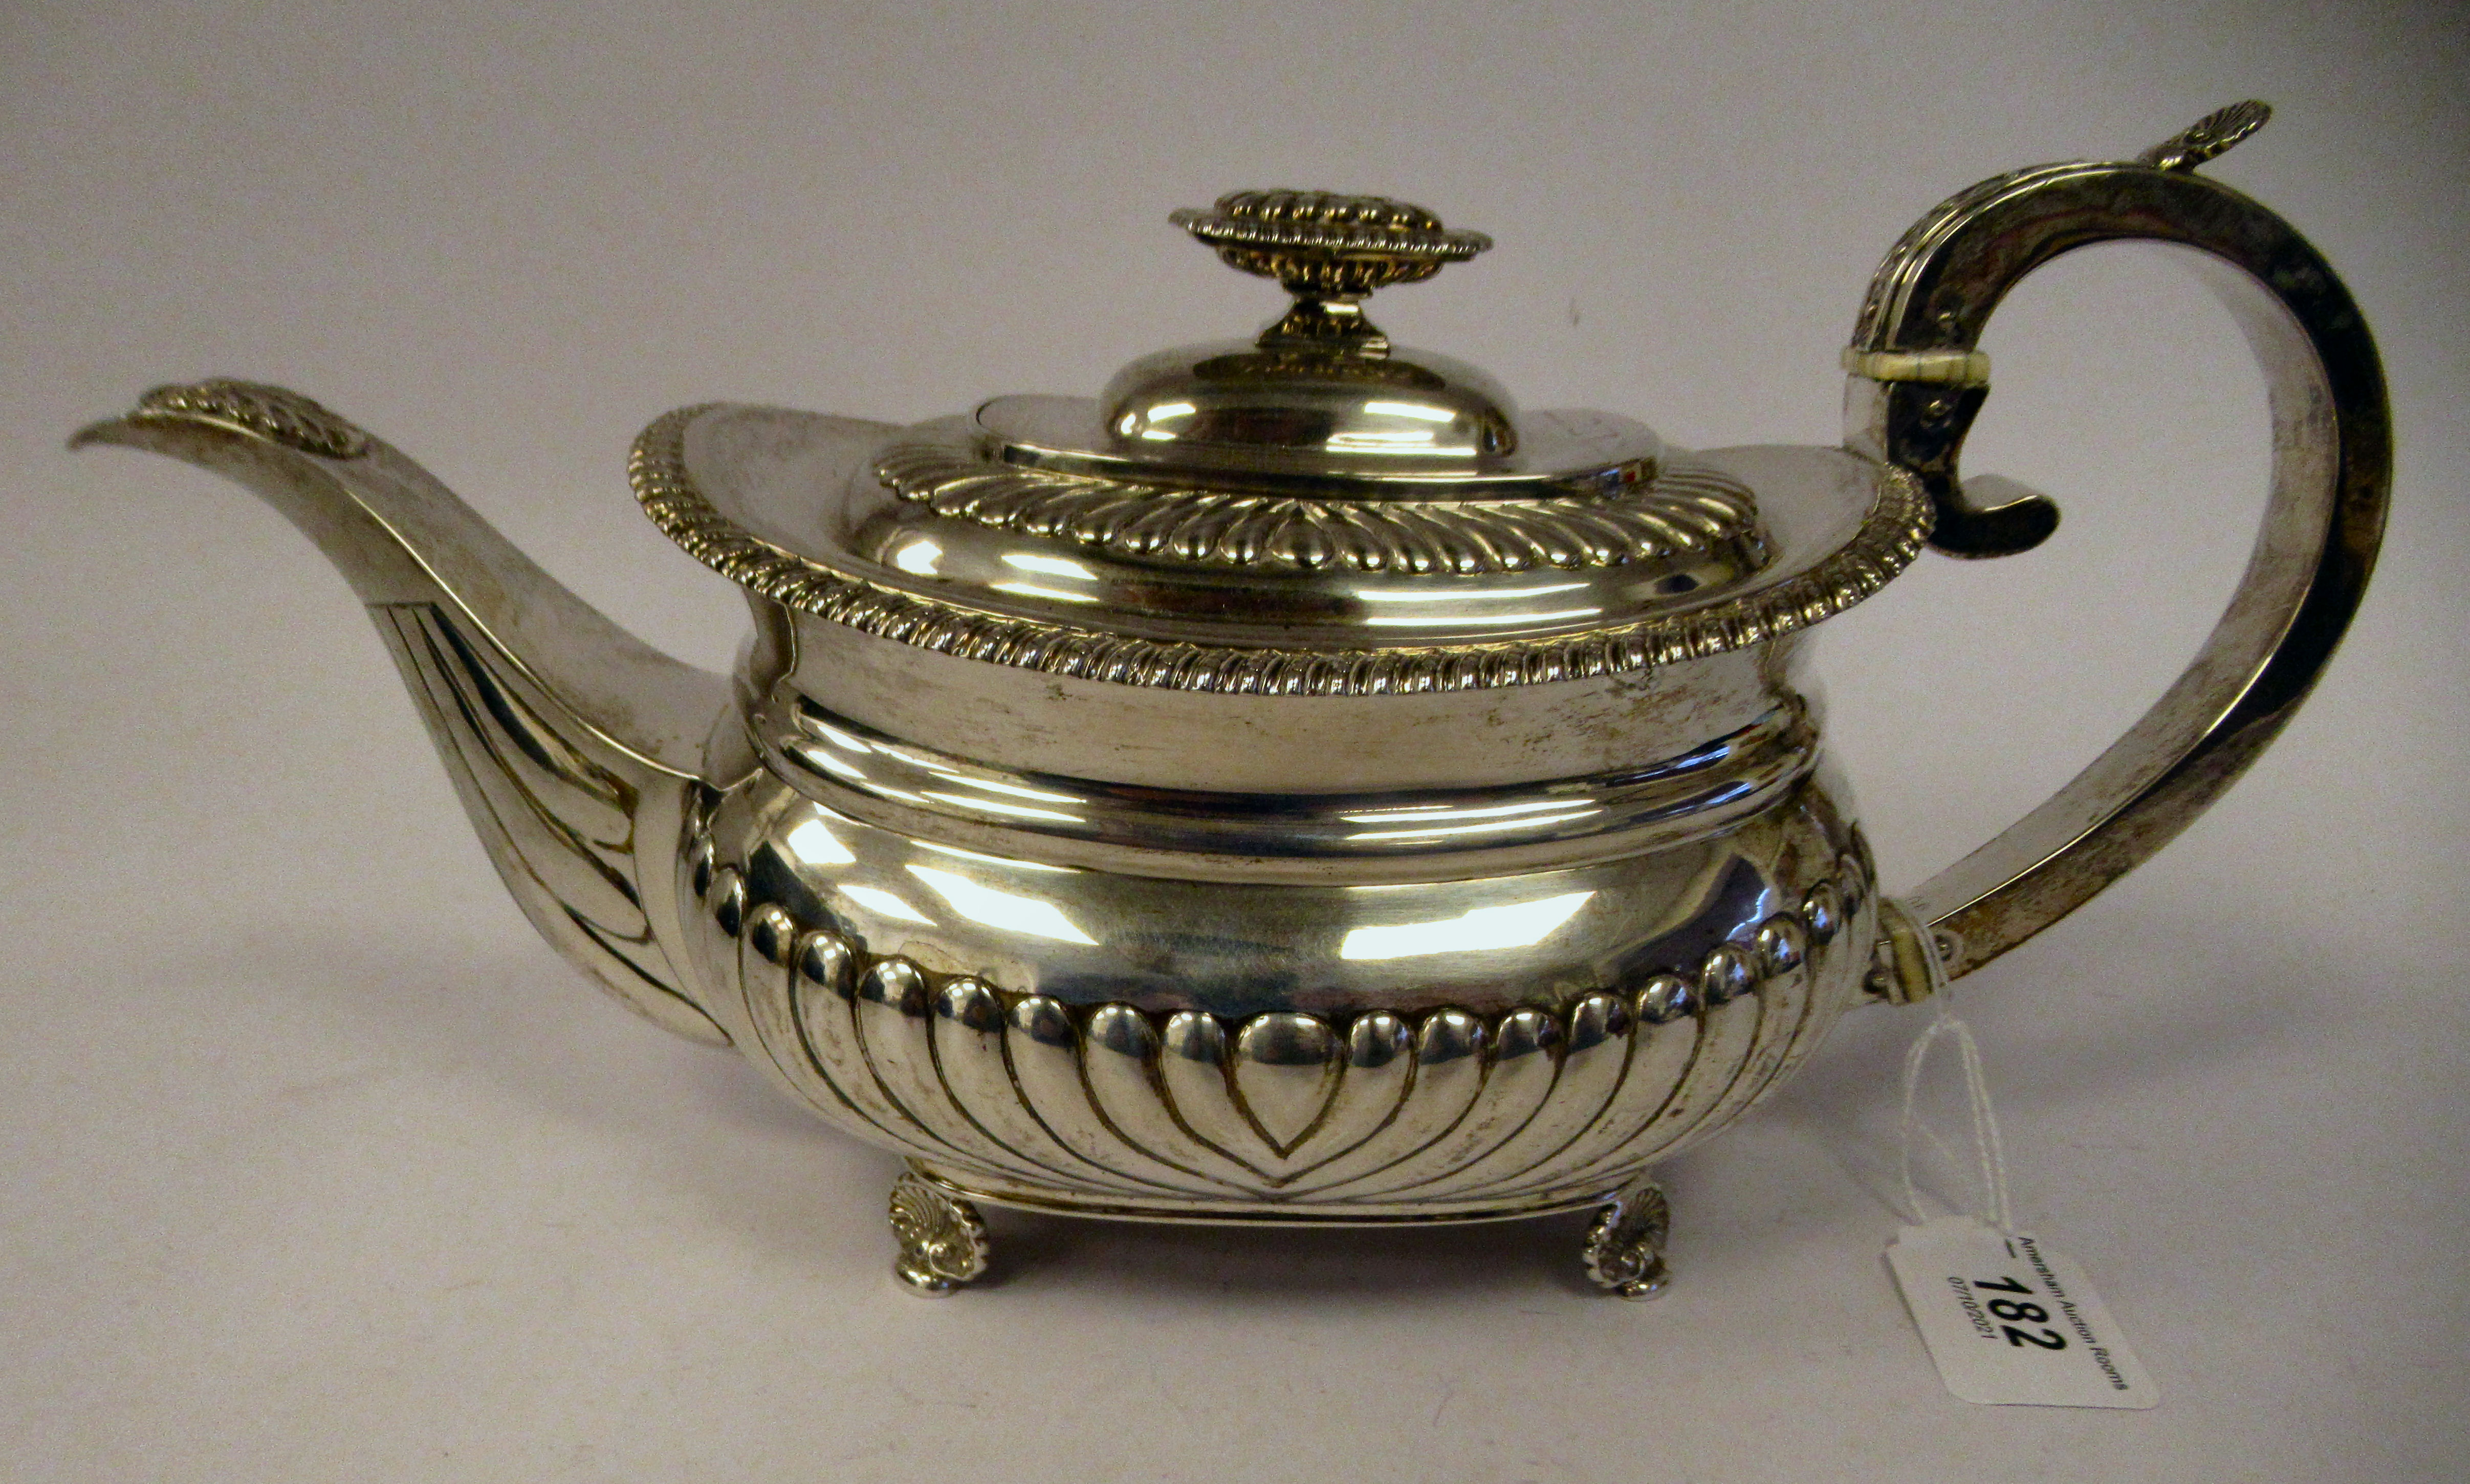 A George III silver teapot of squat, bulbous circular form with floral and foliate cast ornament,